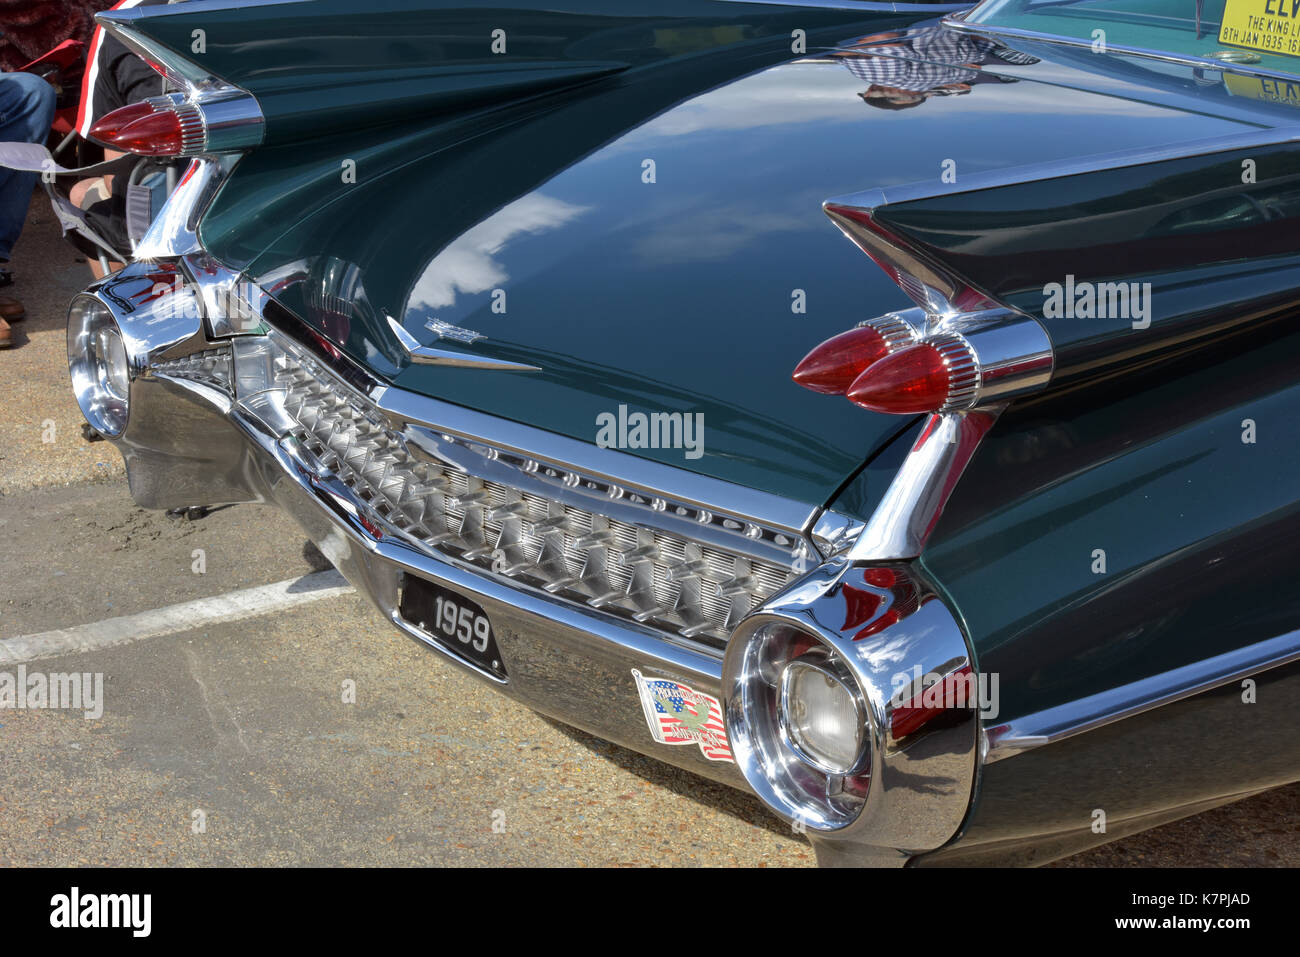 classic, vintage and collectors cars on show at a motorists classic and collectors car show. - Stock Image